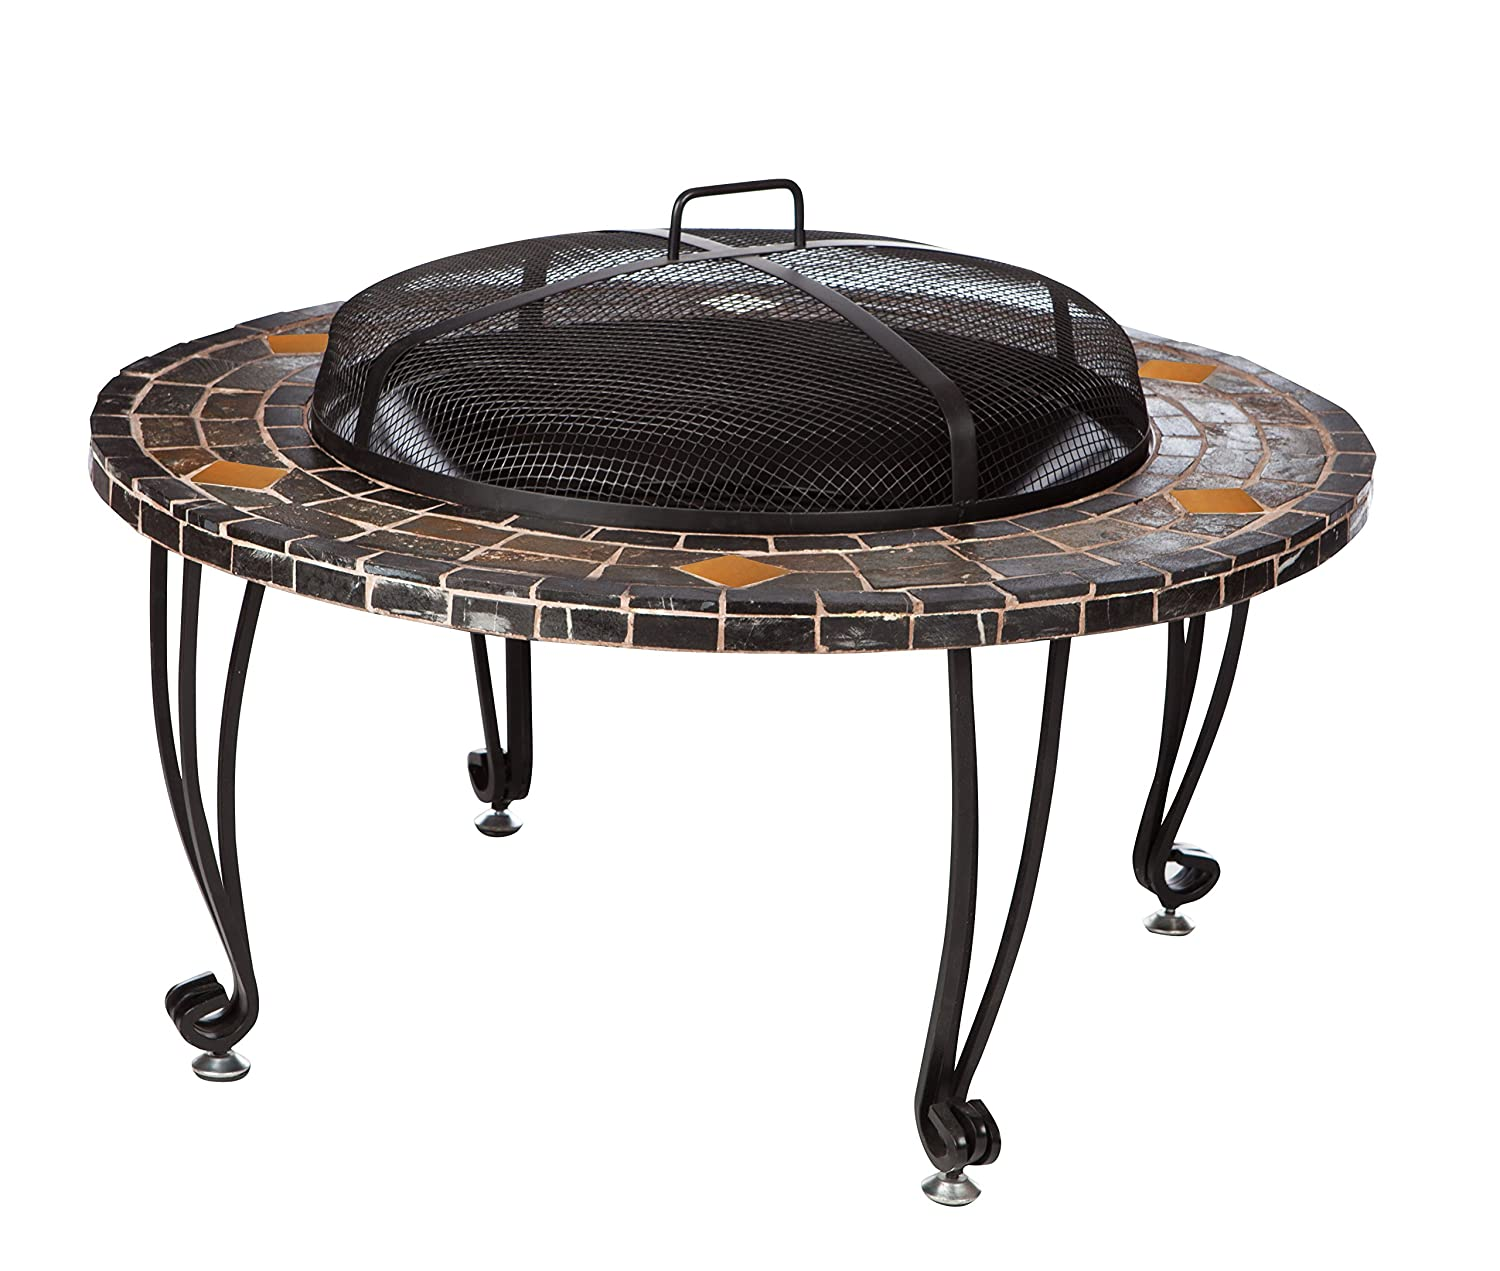 AmazonBasics Natural Stone Fire Pit includes a fire screen that is dome in shape, which will offer a view of up to 360 degrees